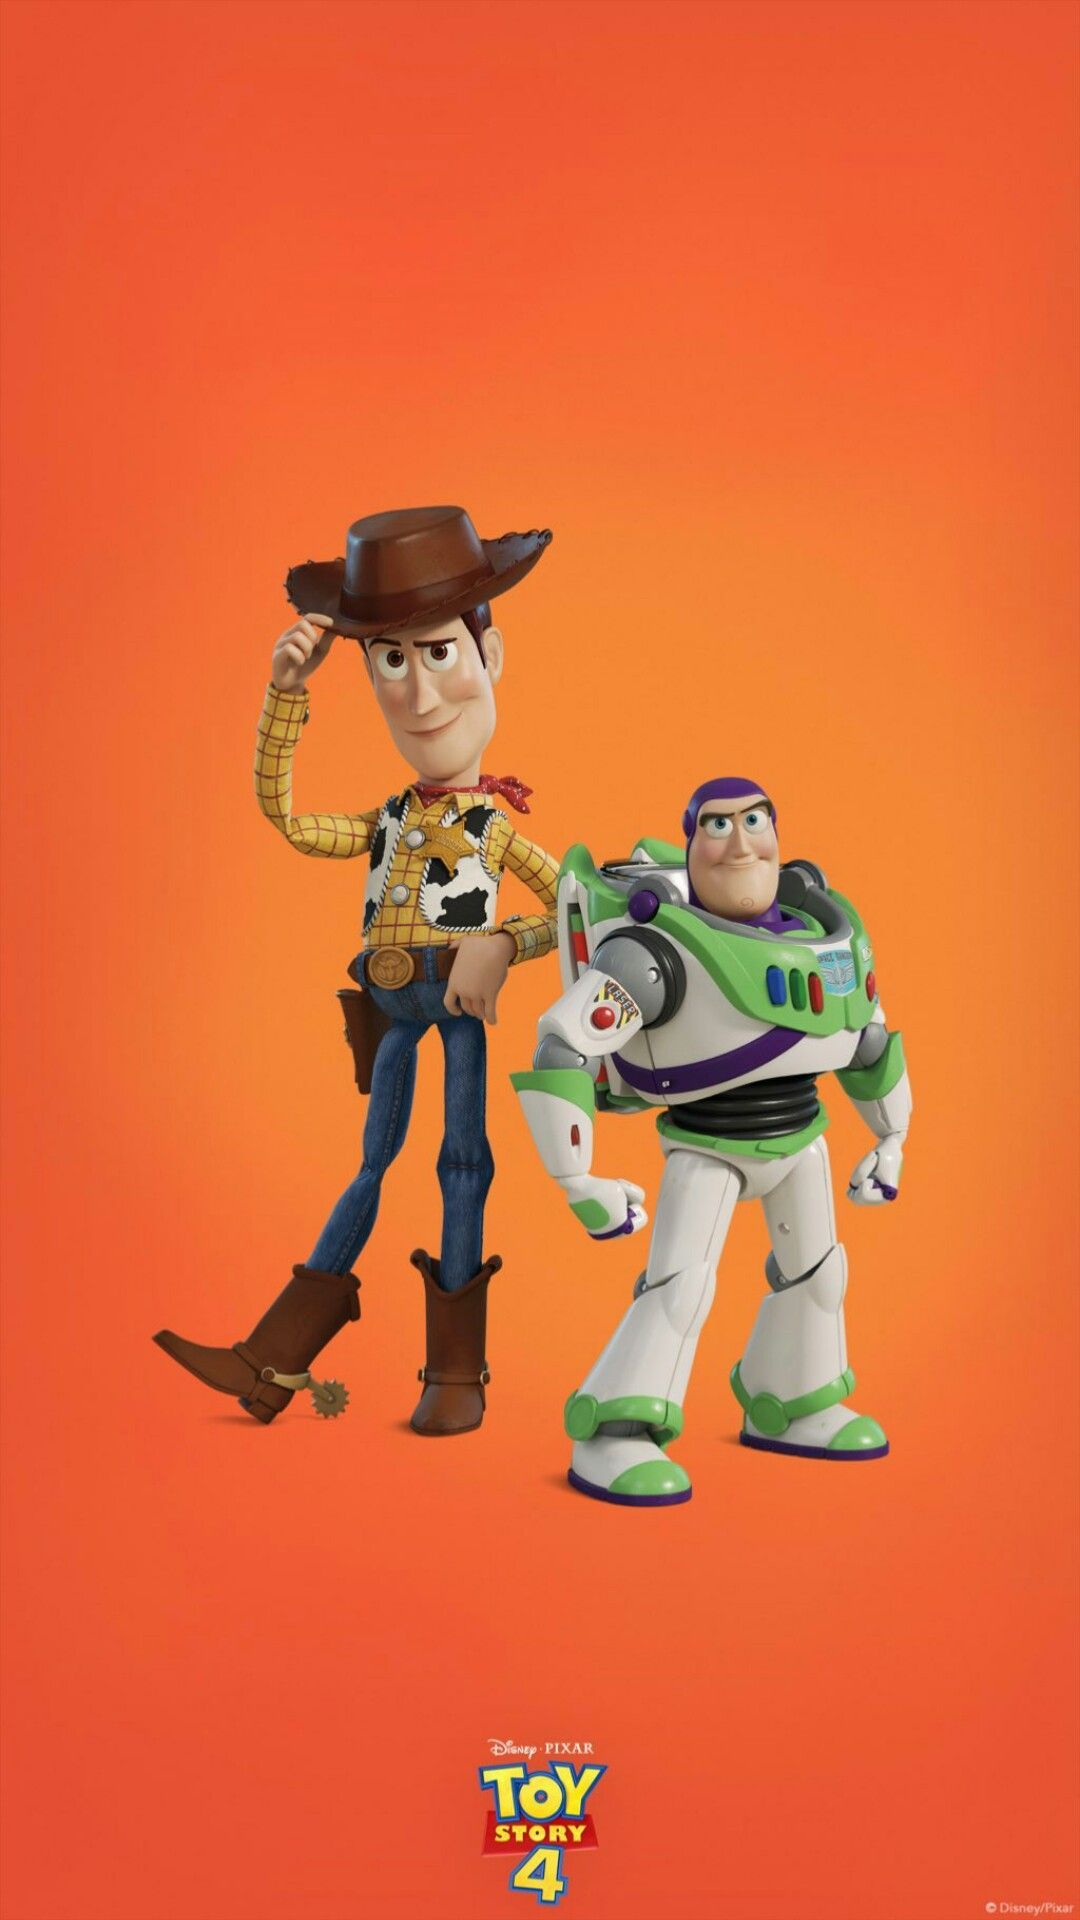 Pin By Gabriela Gabino On Disney Wallpapers Woody Toy Story Cute Cartoon Wallpapers Toy Story Movie